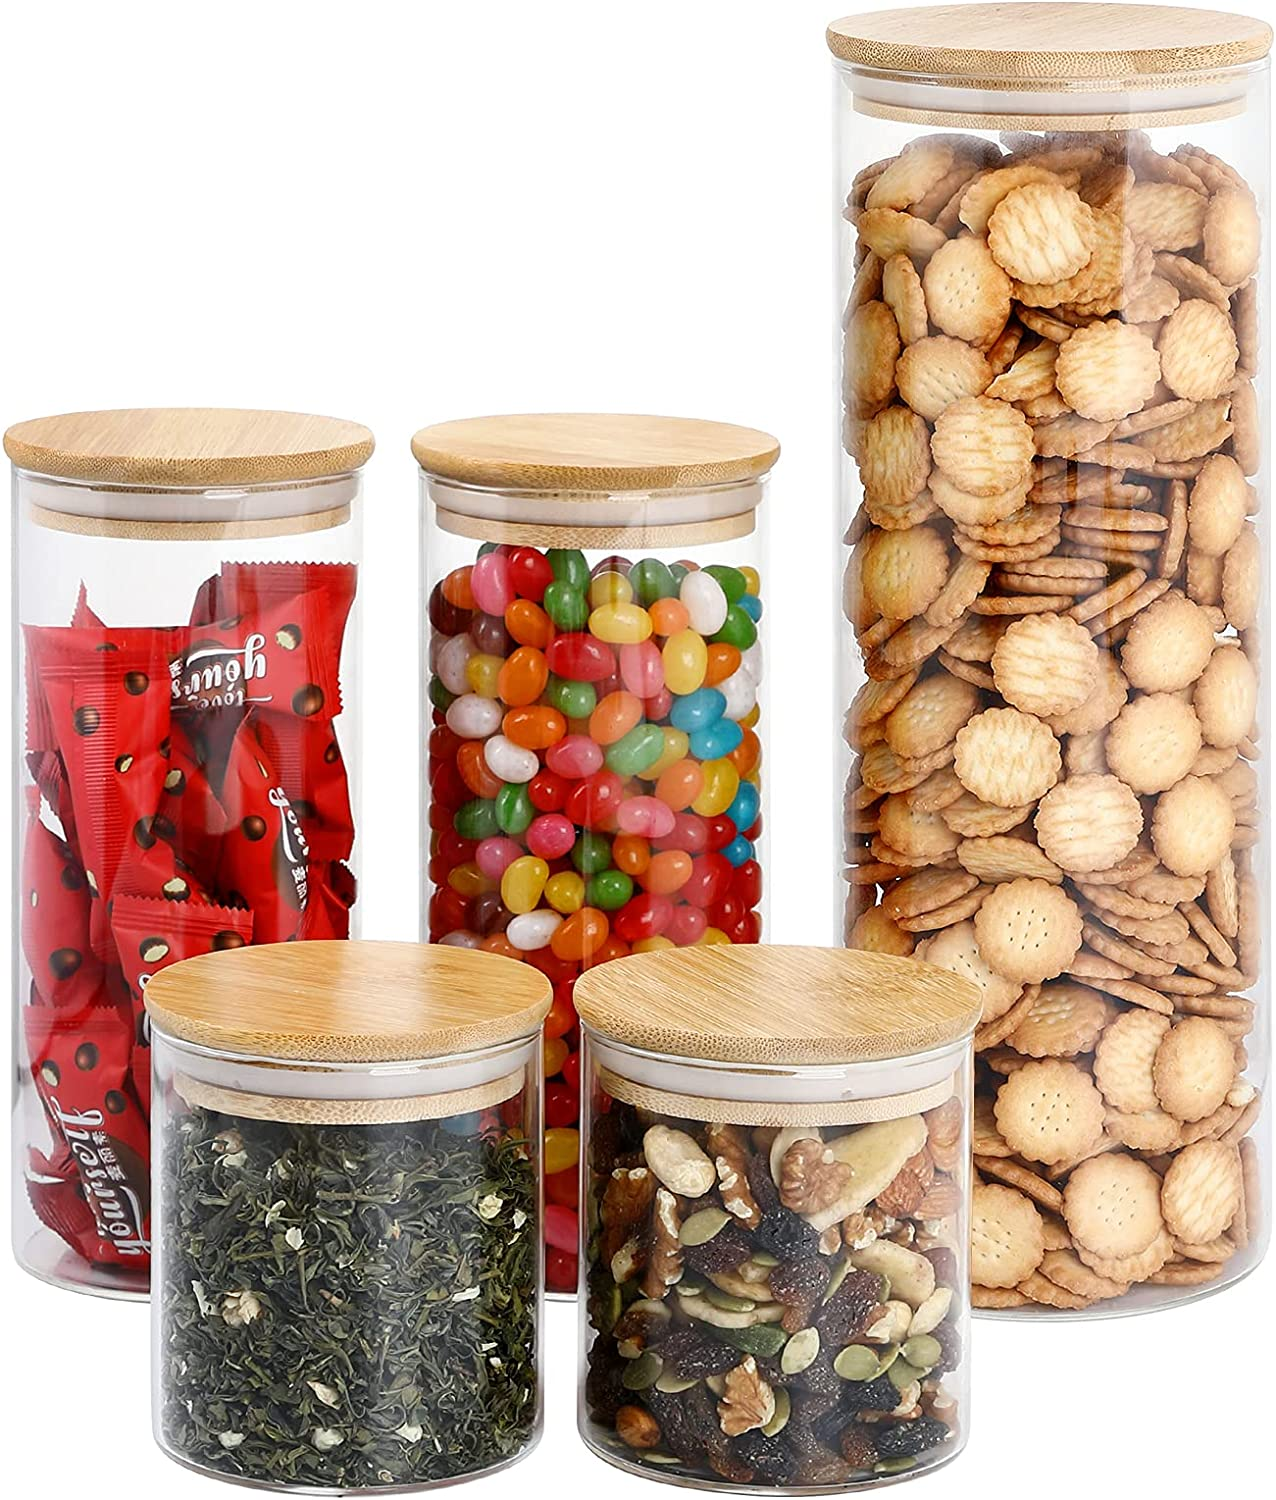 Kitchen Canisters Set of 5, DANALLAN Storage Glass Canister Food Container Clear Food Jars Organizers for Flour, Candy, Cookie, Rice, Pasta, Nuts